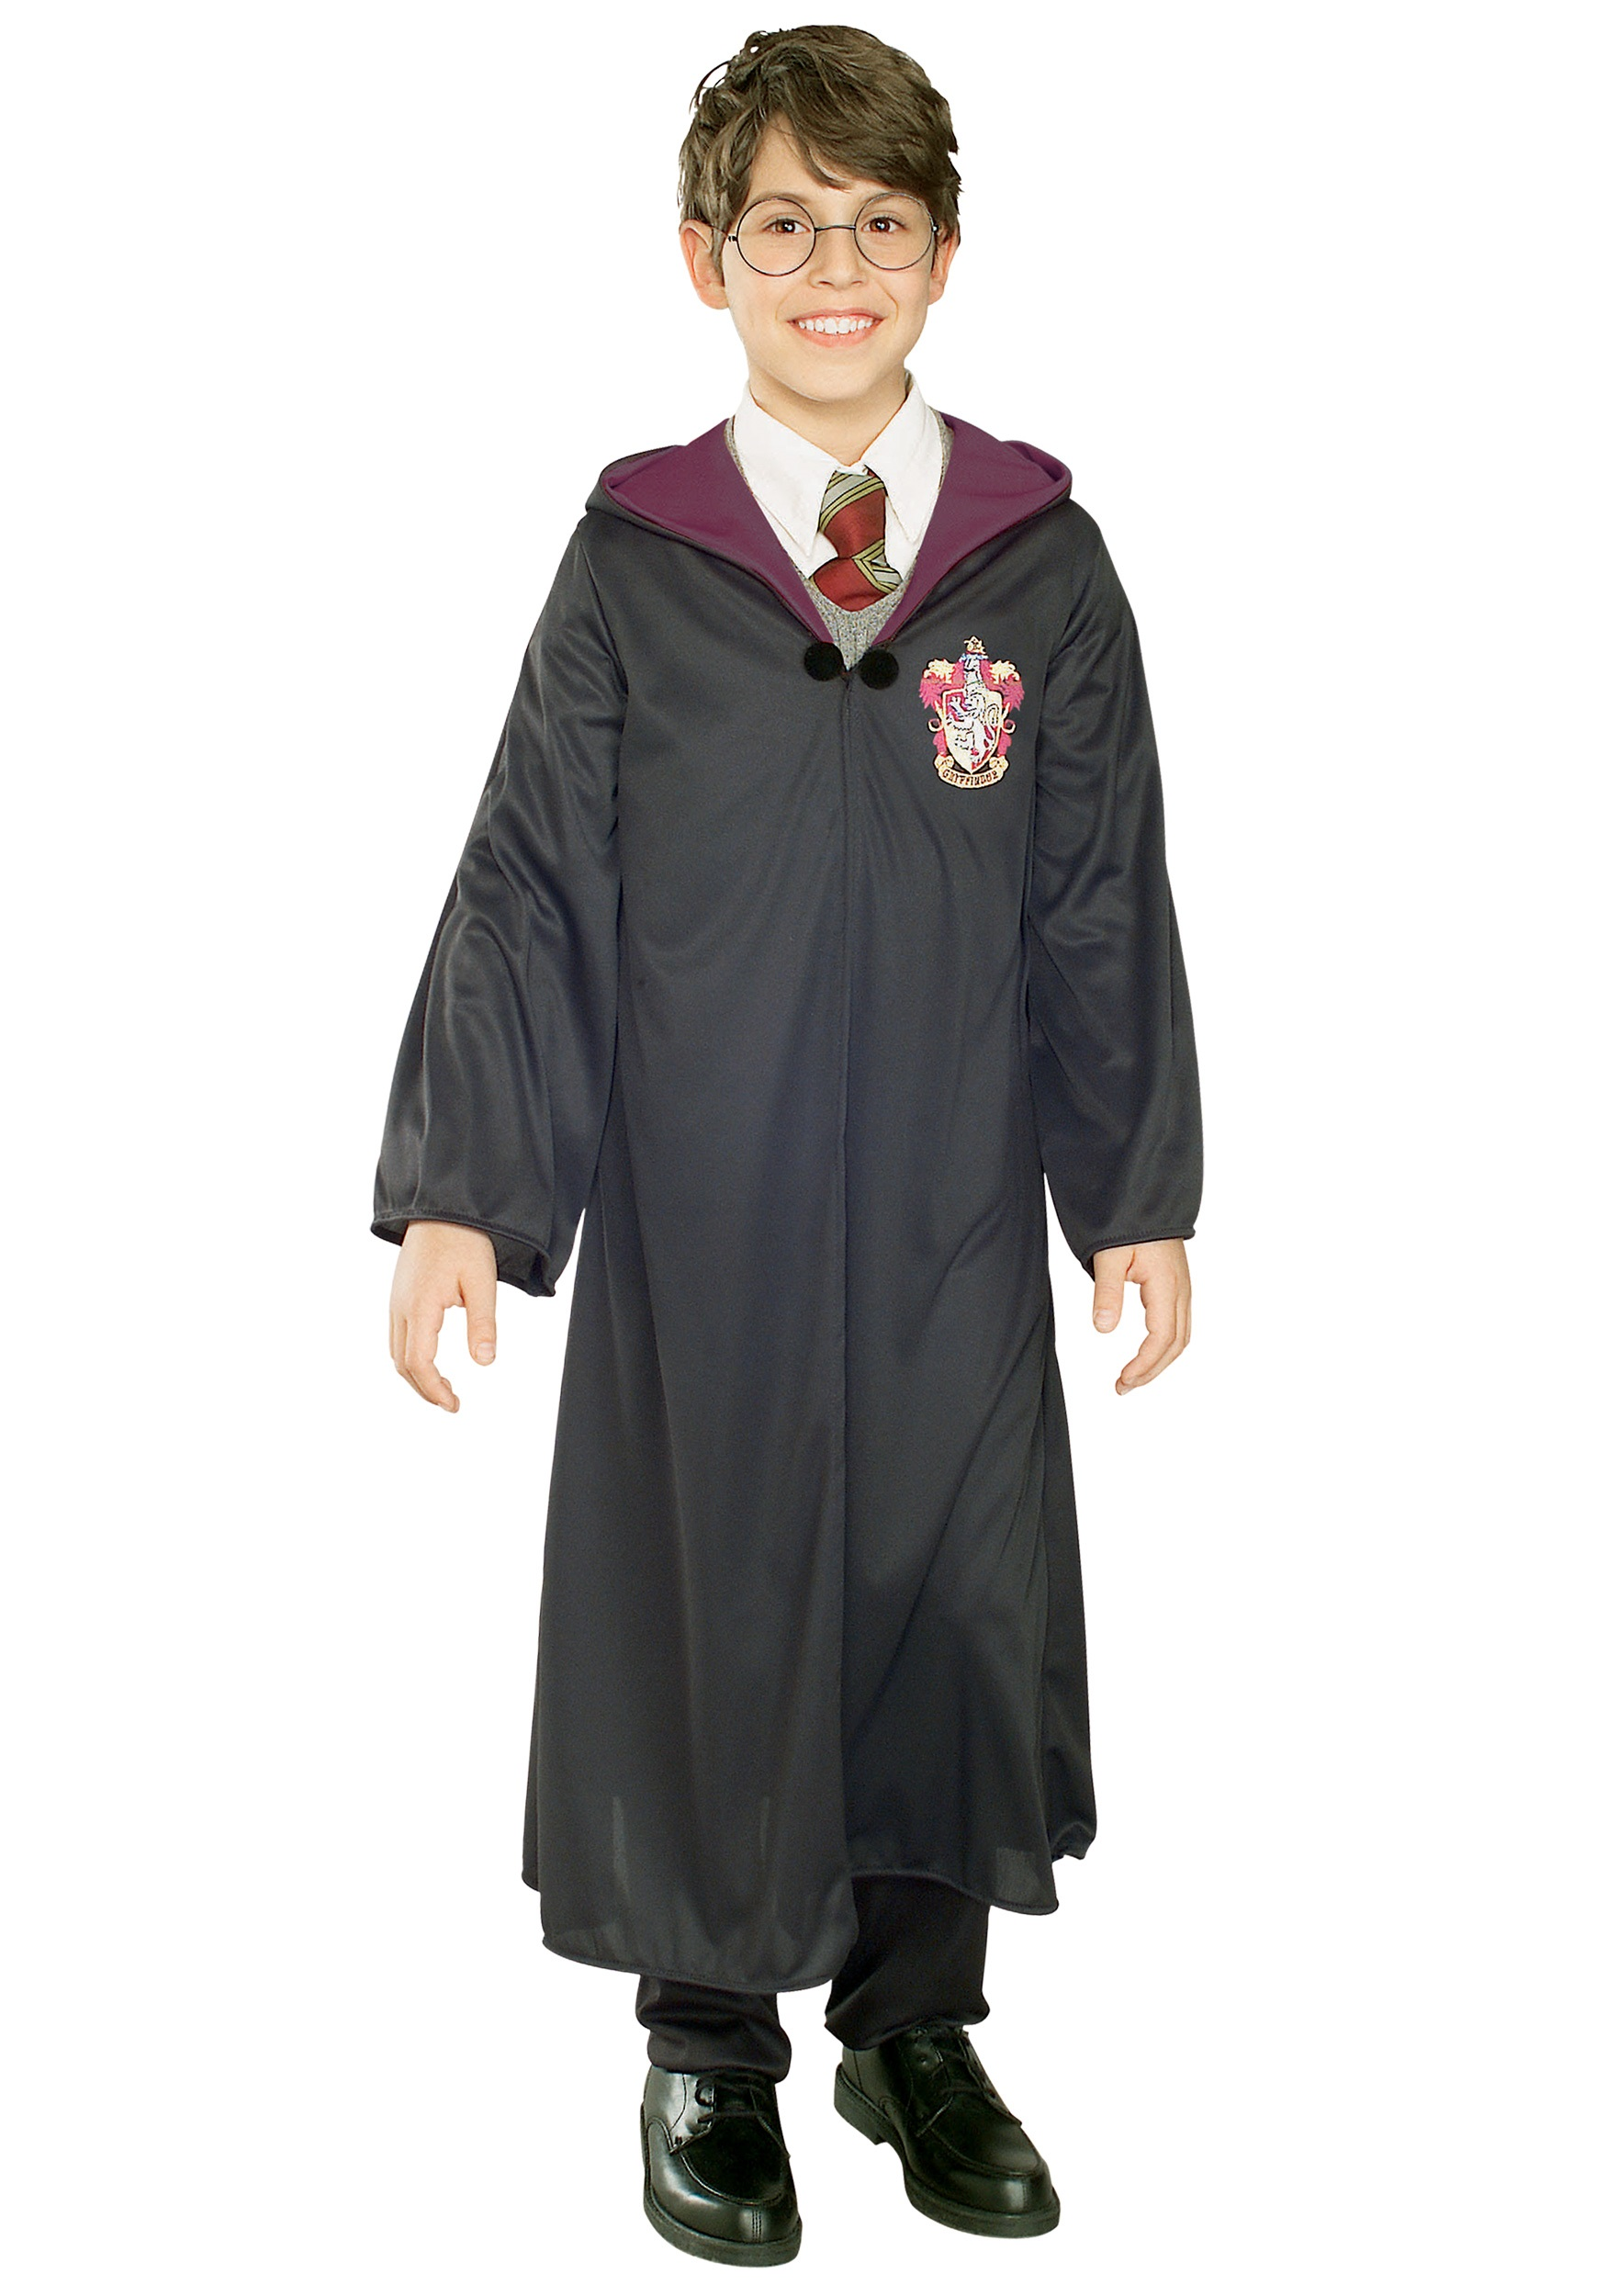 Child Harry Potter Costume